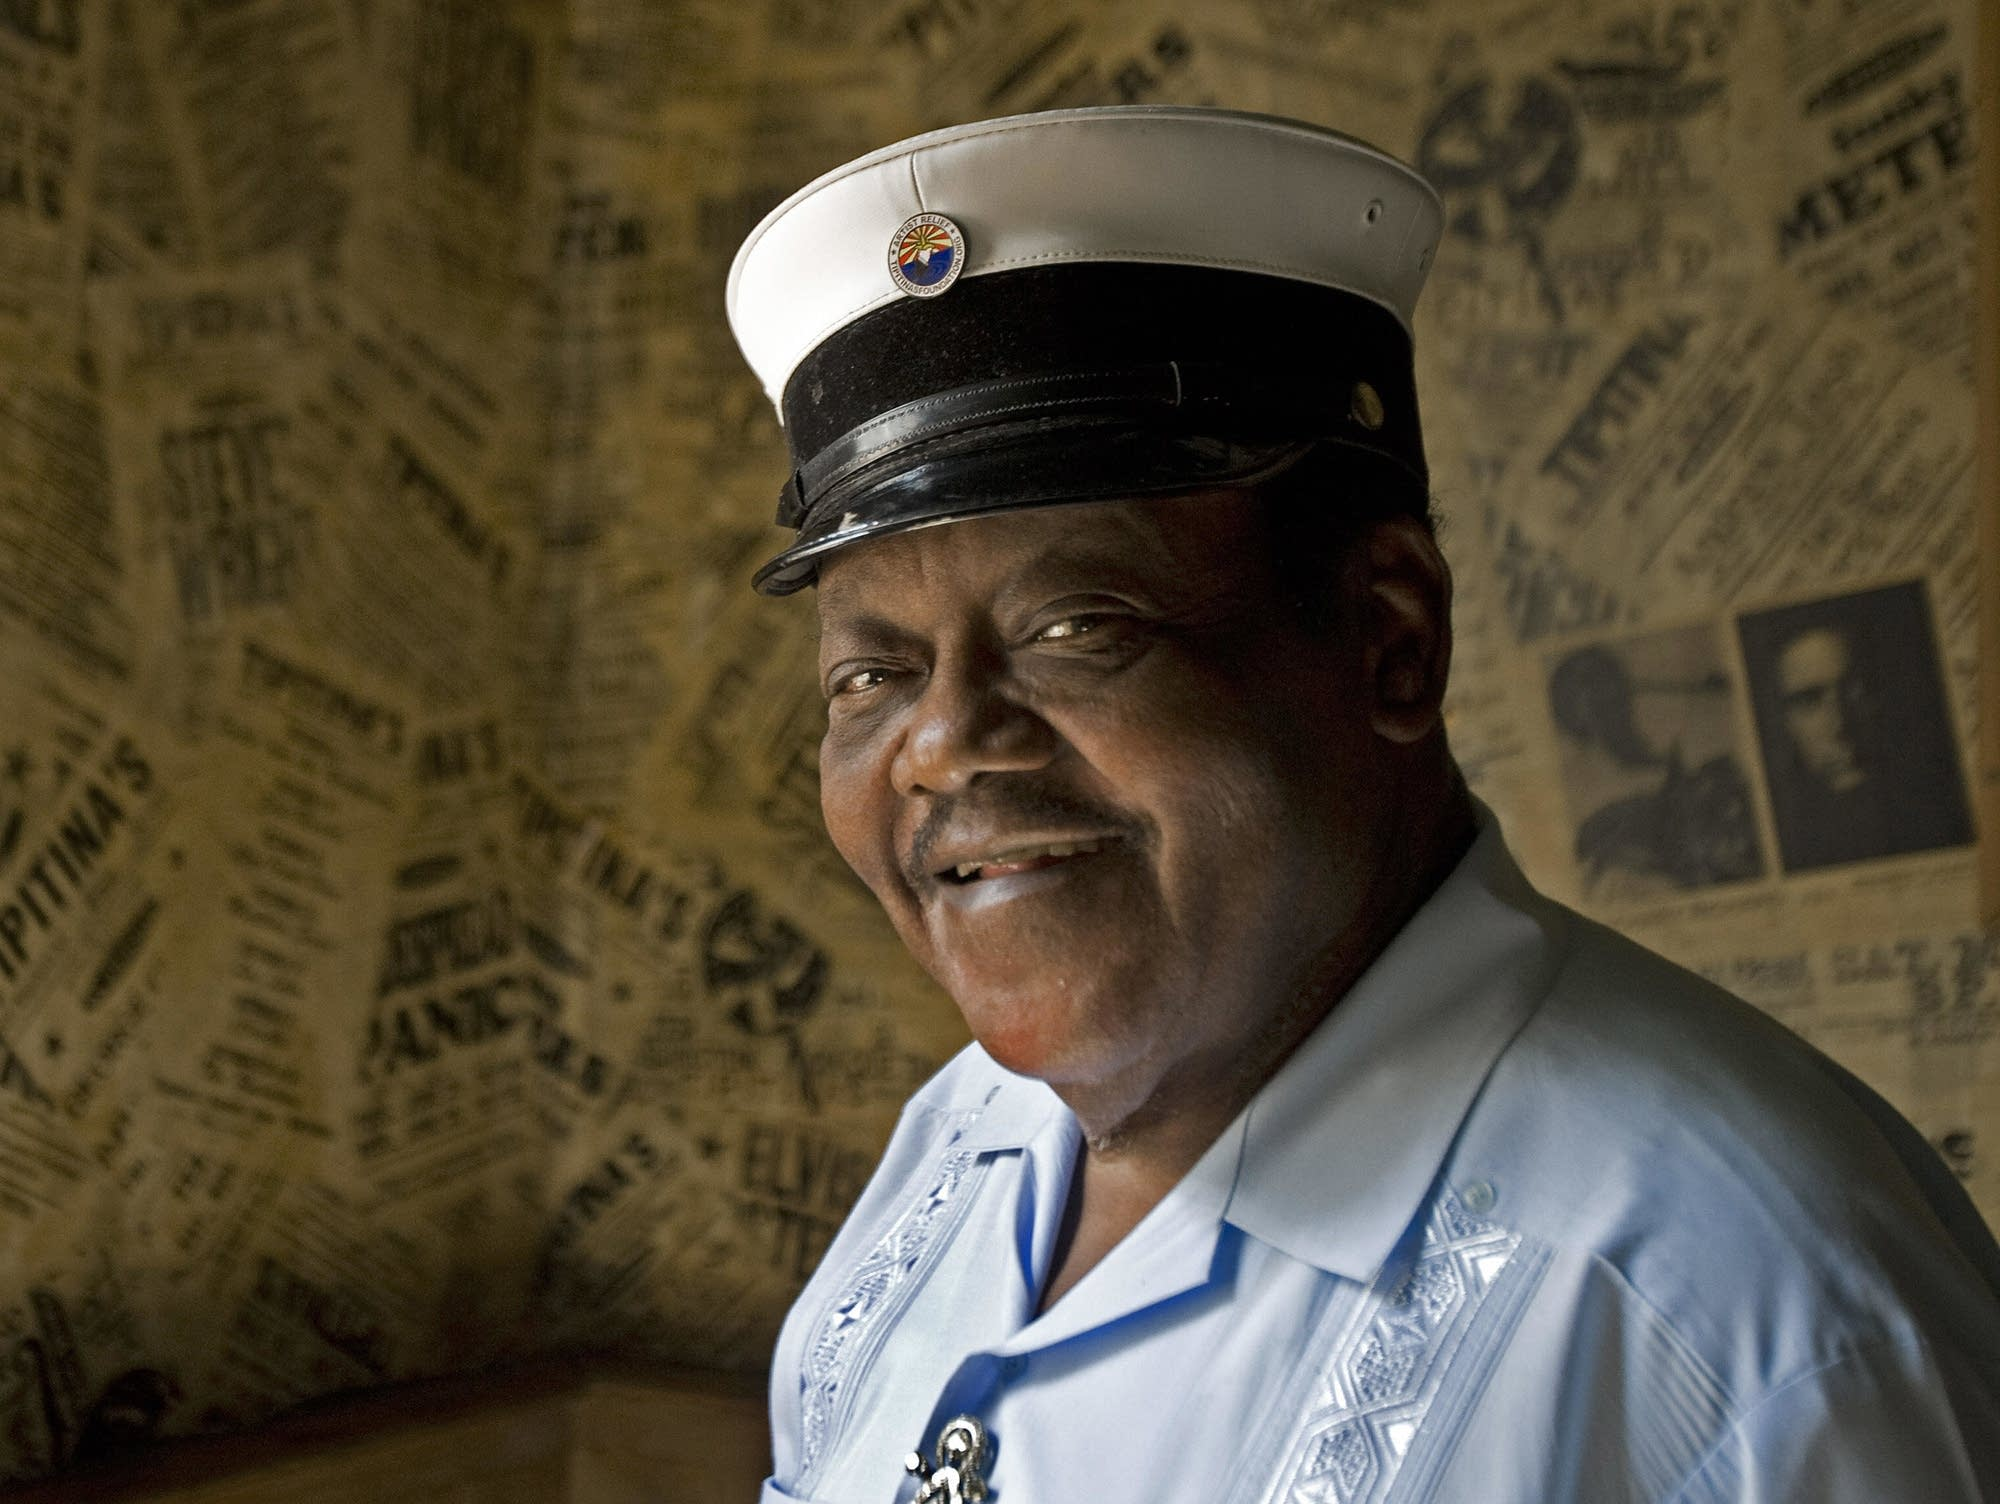 Fats Domino poses for a portrait in 2007.